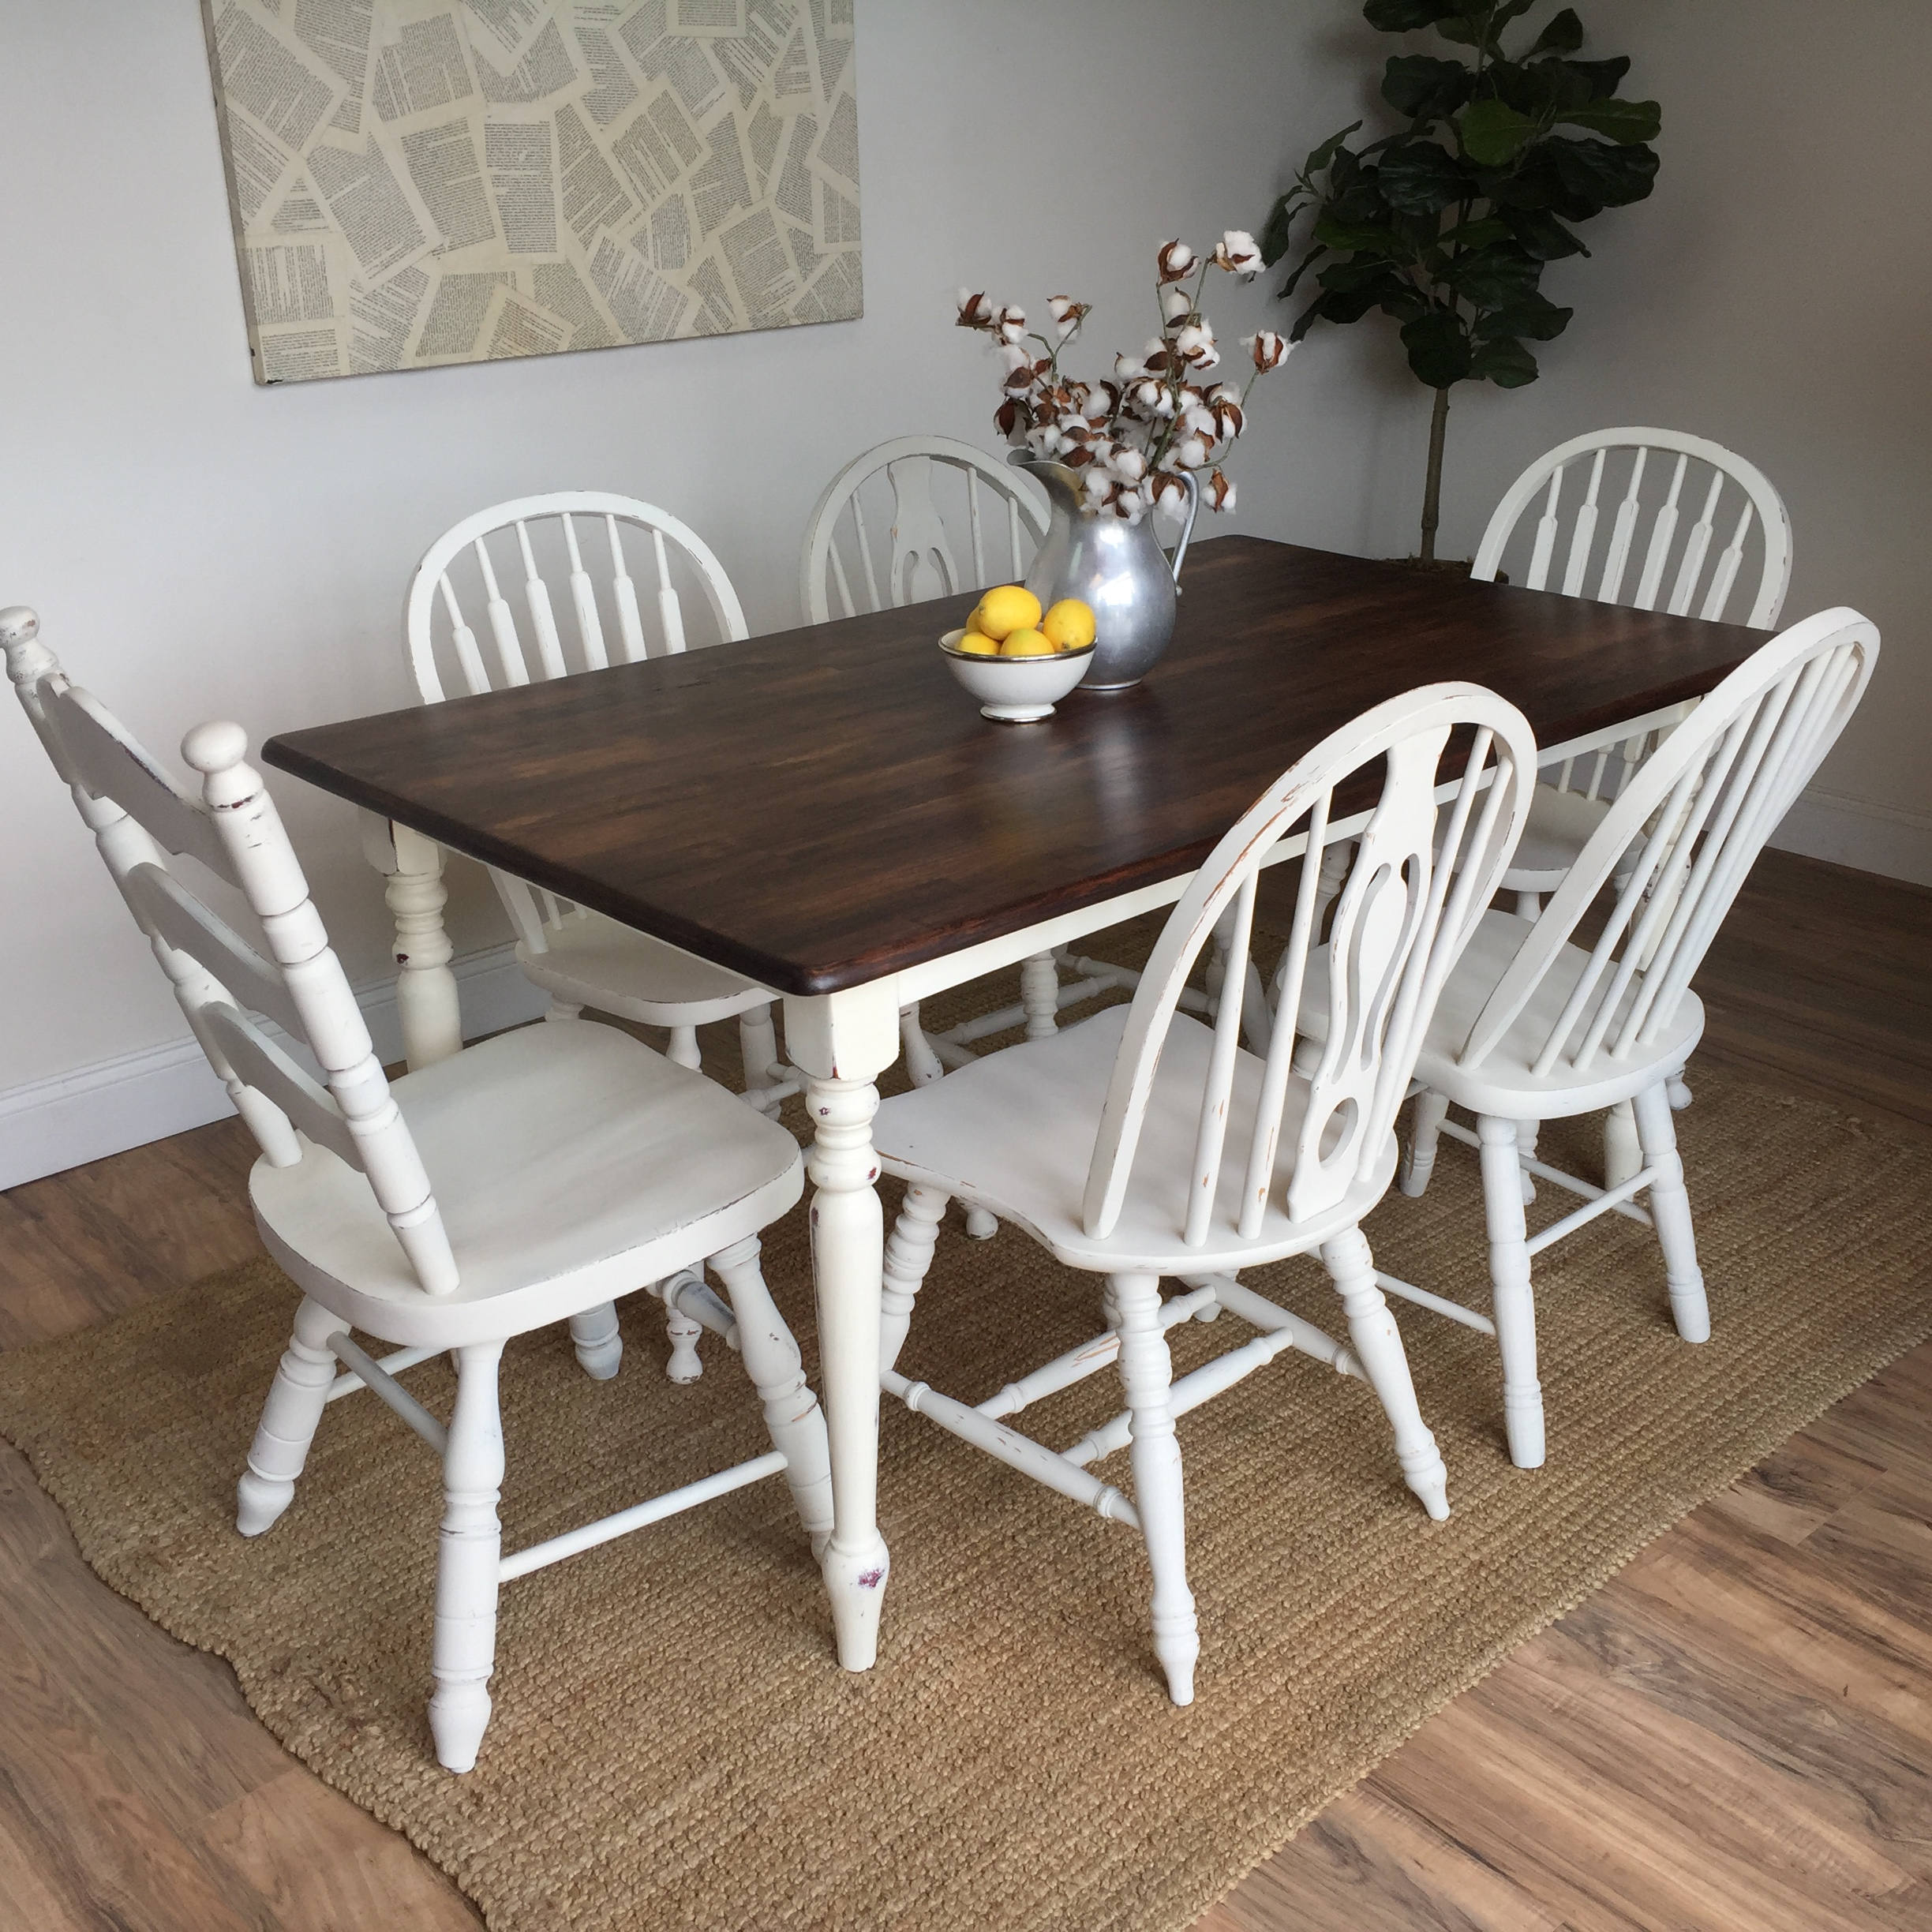 Distressed White Dining Chairs Distressed Kitchen Table Small White Dining Table